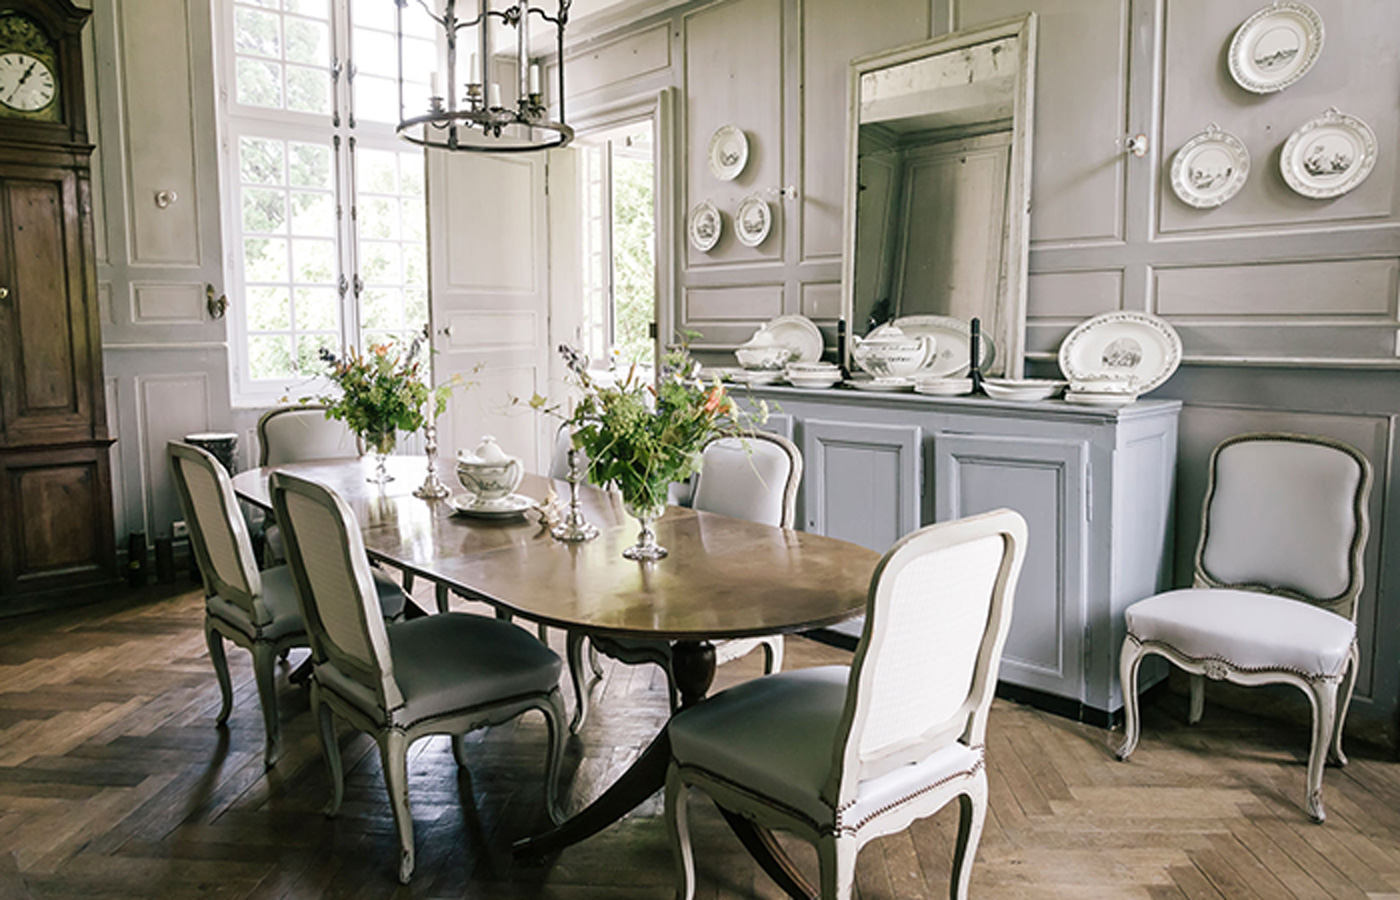 How To Decorate A French Country Home Interior Design Explained